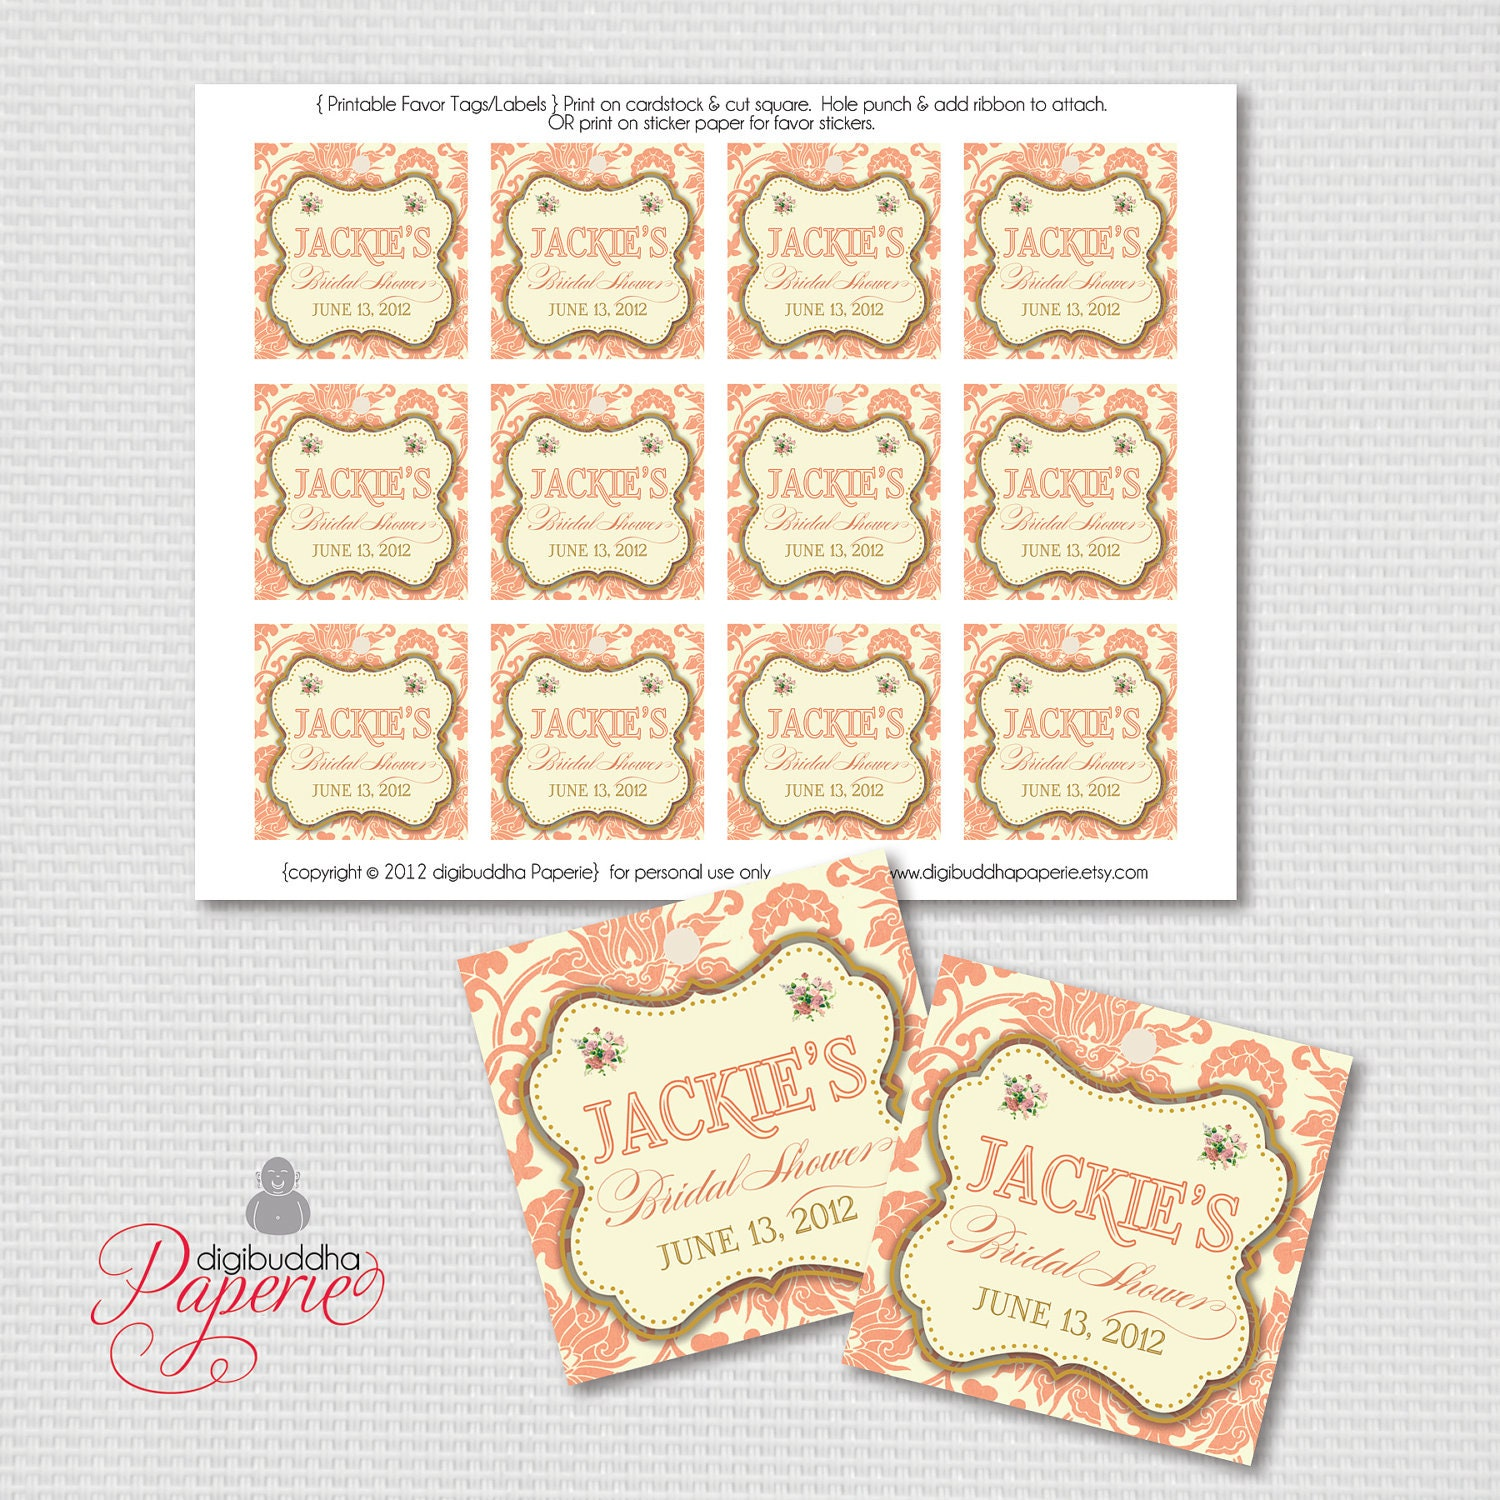 Ideas Free Printable Wedding Gift Tags fancy tags etsy coral favor ...